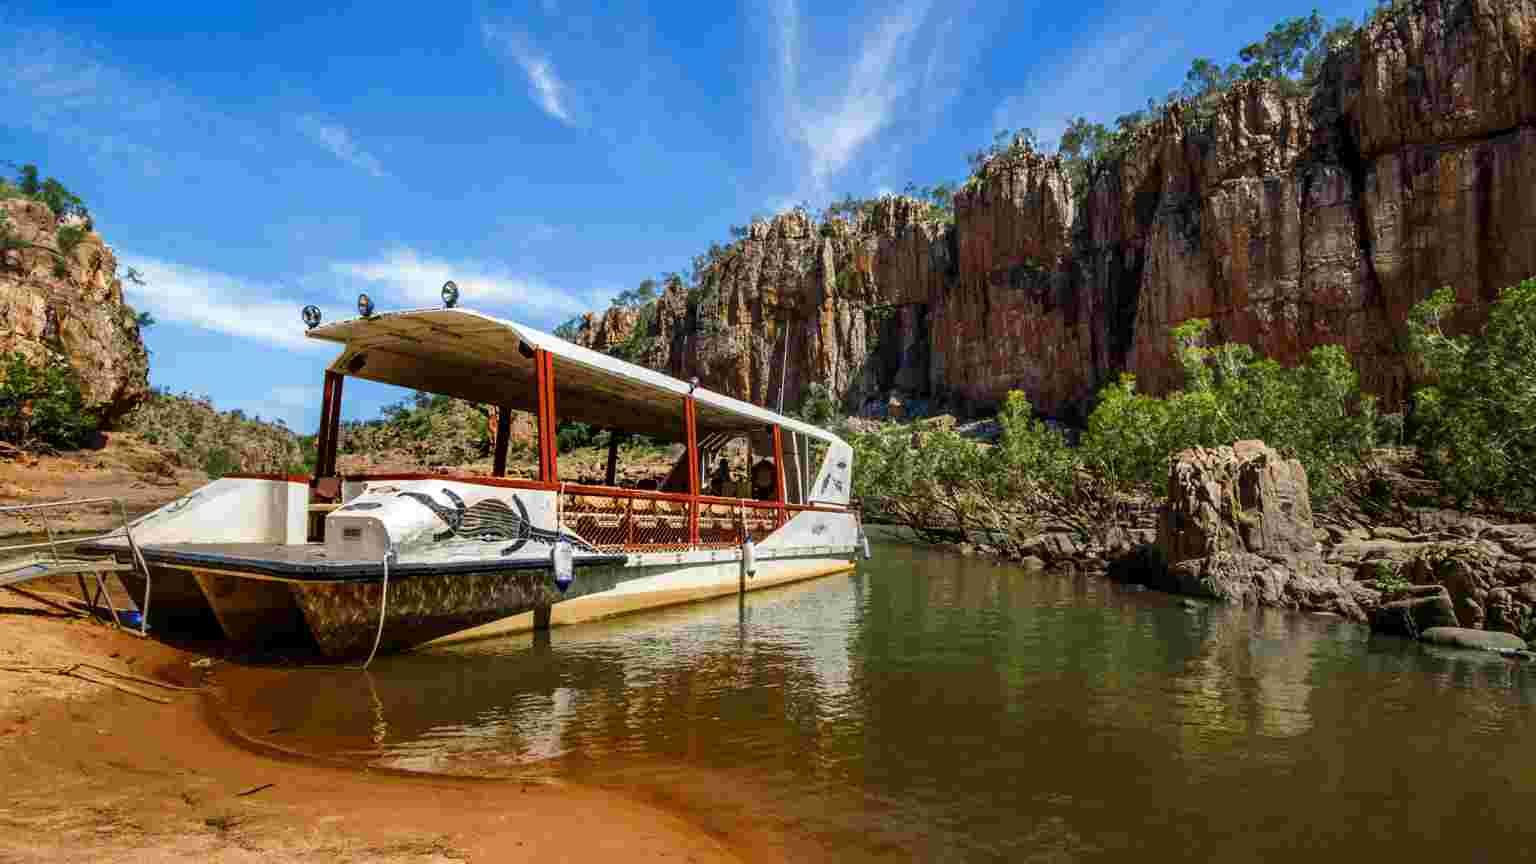 Nitmiluk National Park (Katherine Gorge) covers a vast area of escarpment country, including 13 gorges carved from the ancient sandstone country. (Sightseeing B